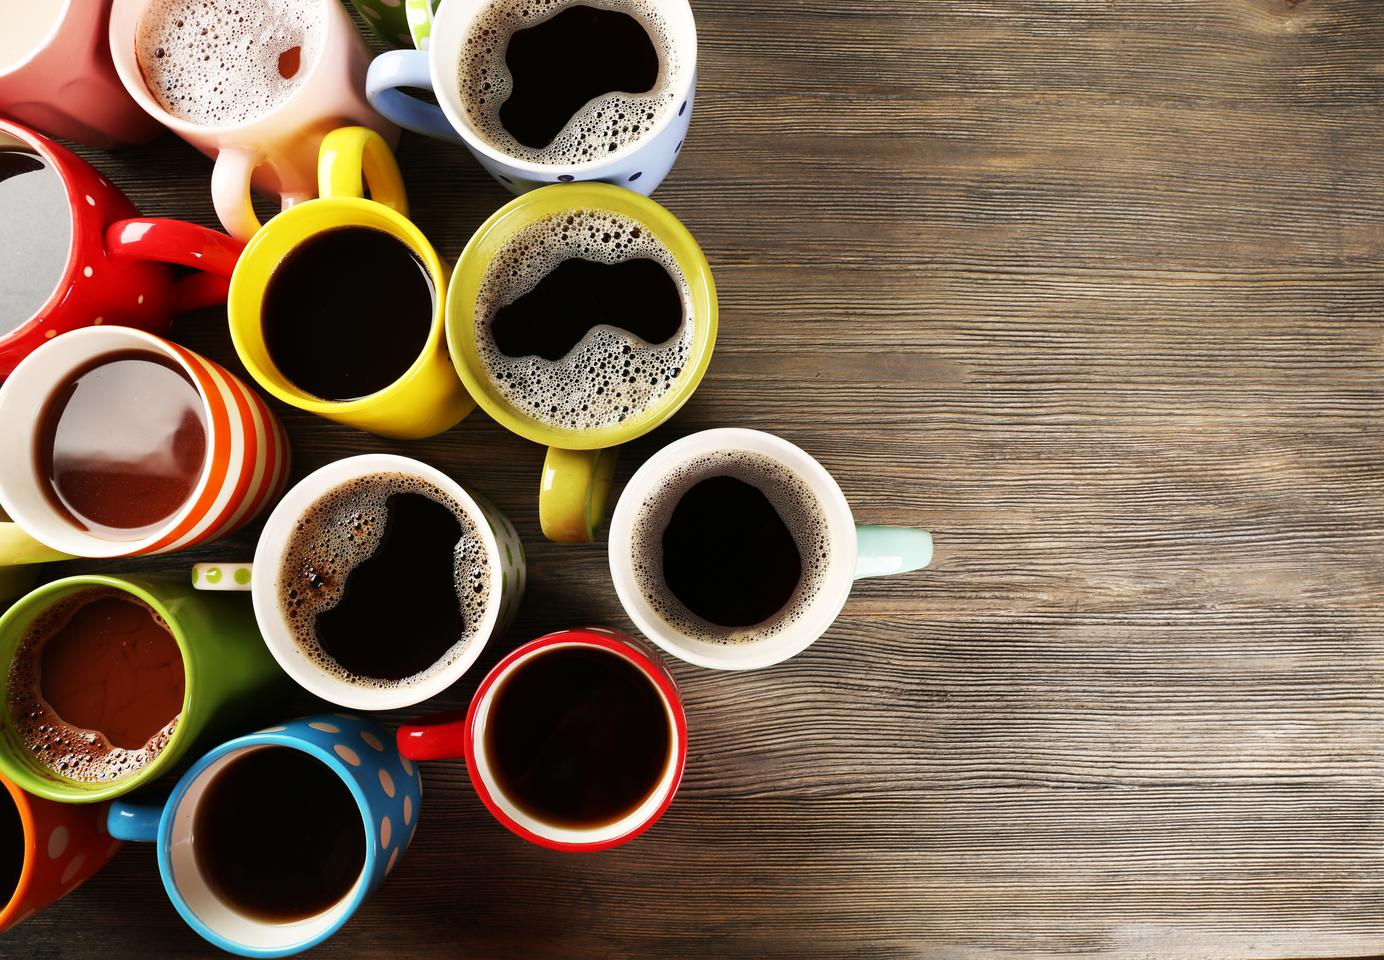 A new study suggests that higher coffee consumption could reduce the risk of death from all causes